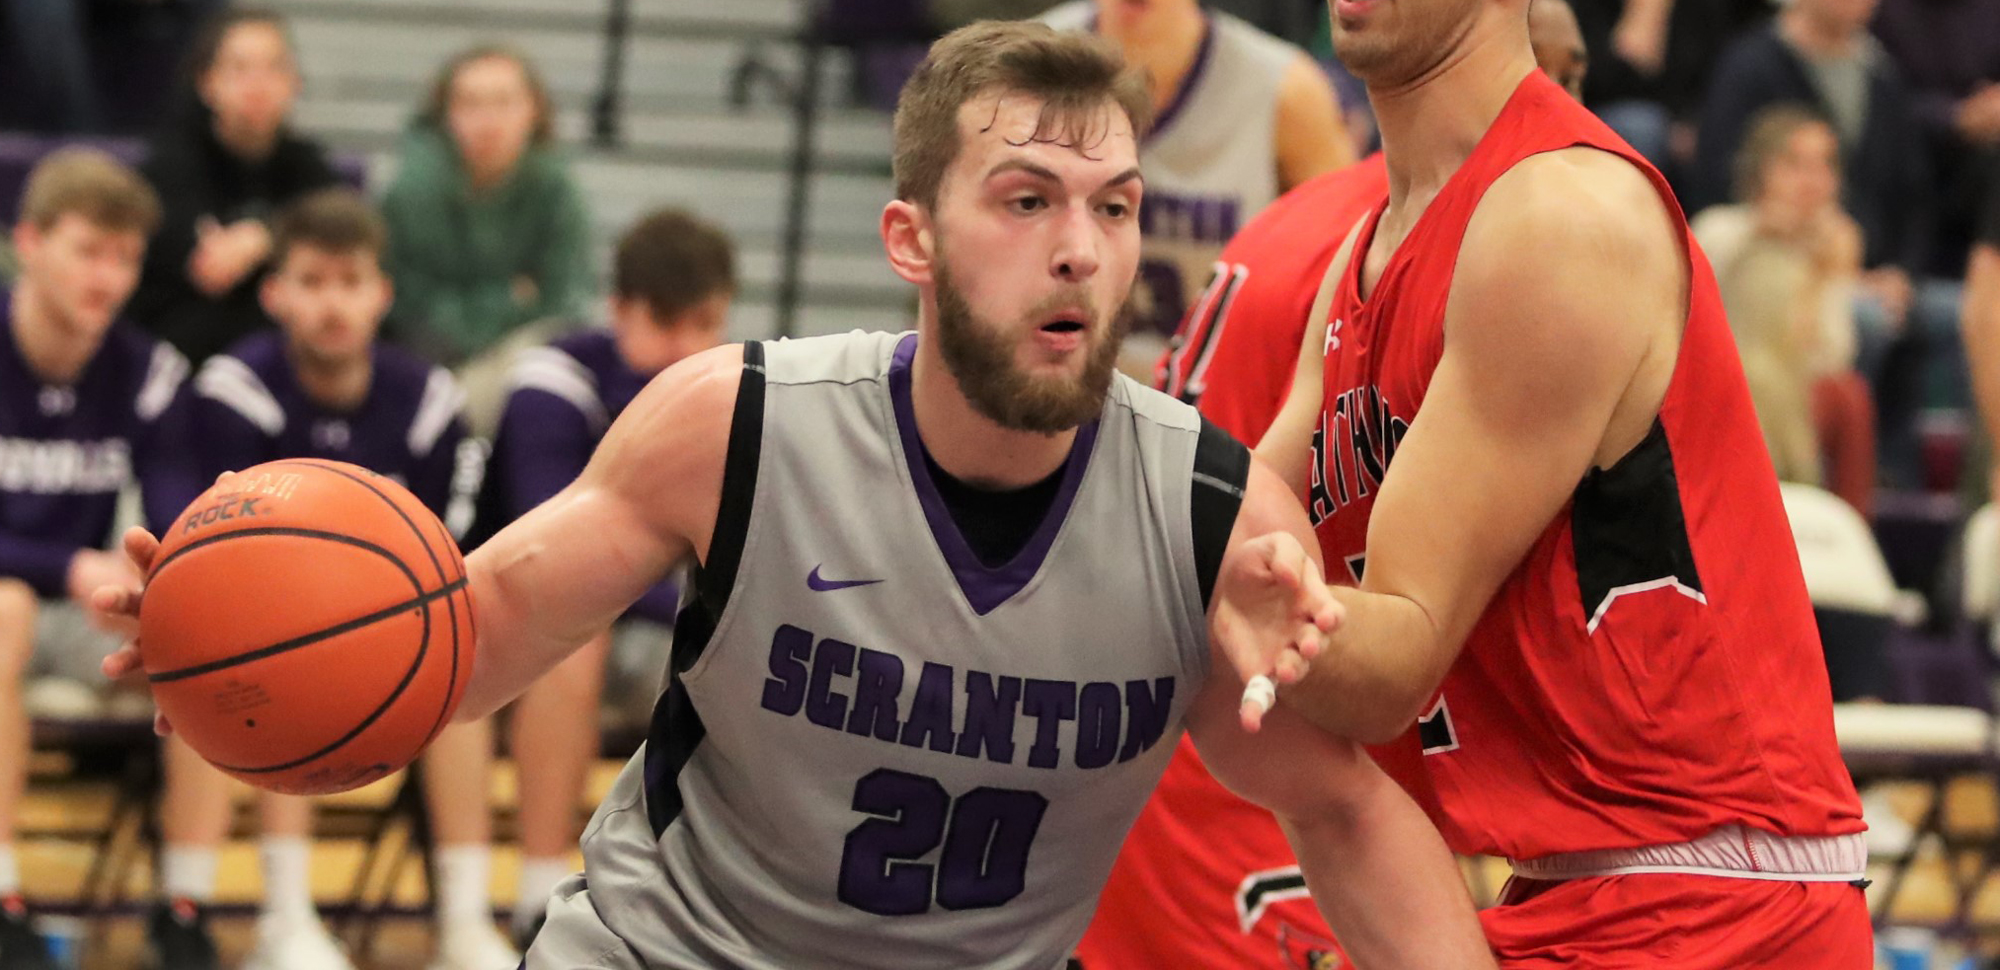 Senior Matt Mancuso was named the Scranton Athlete of the Week for the third time in his career on Monday. © Photo by Timothy R. Dougherty / doubleeaglephotography.com